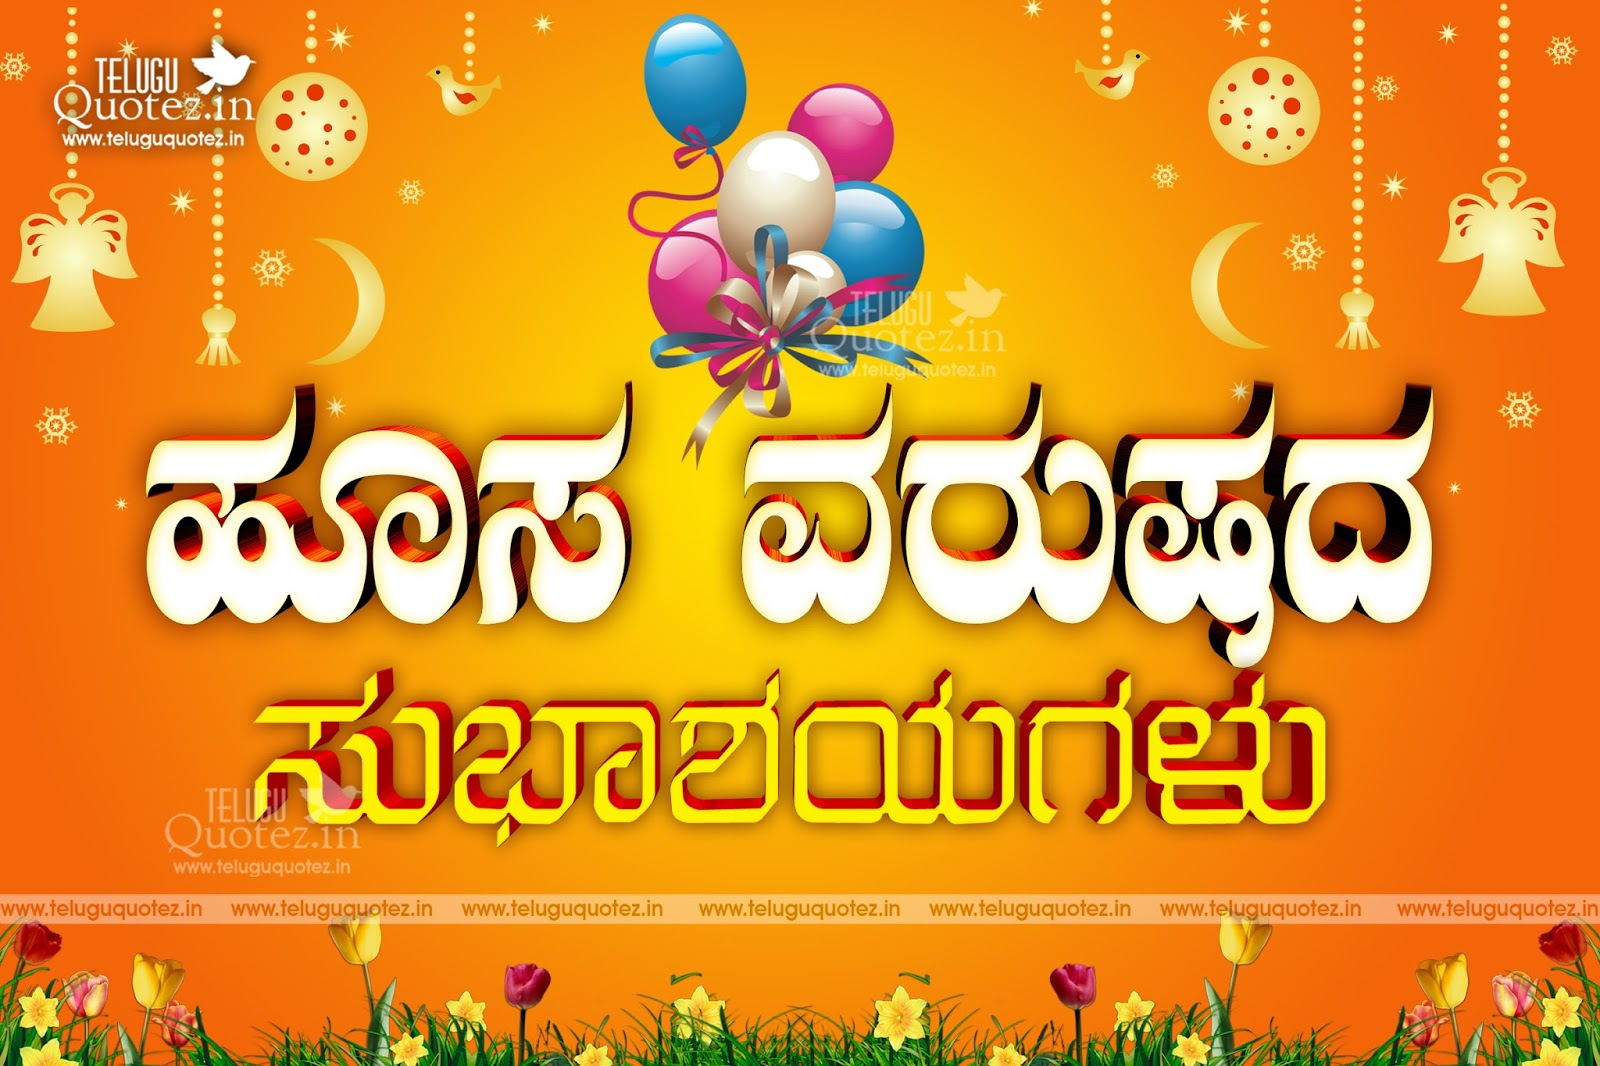 2016 Happy New Year Kannada Greeting Quotes Hd Images Teluguquotez